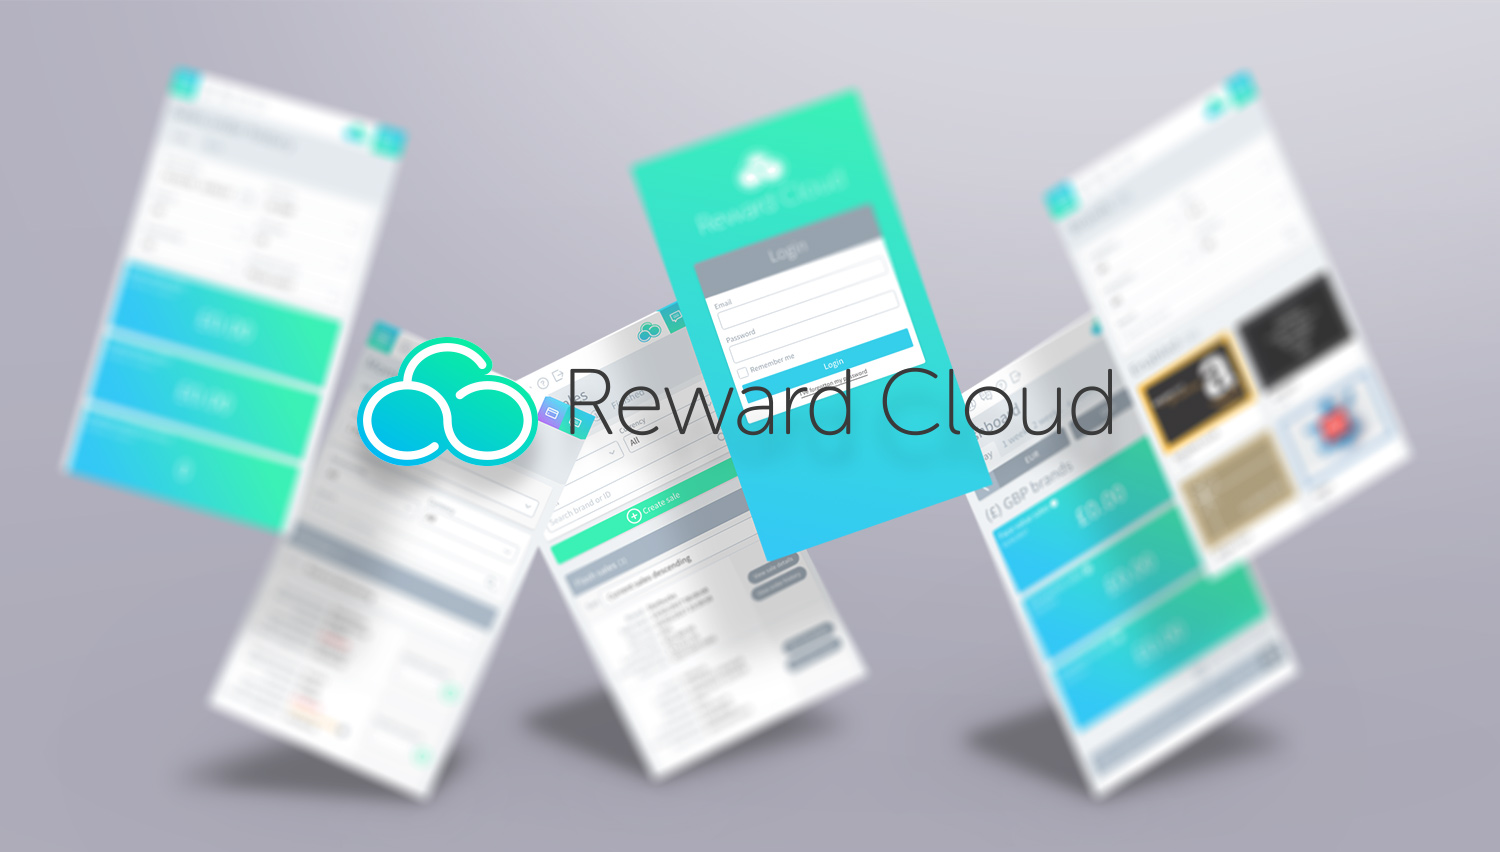 Personal Group partners with Reward Cloud to offer instant benefits to employees